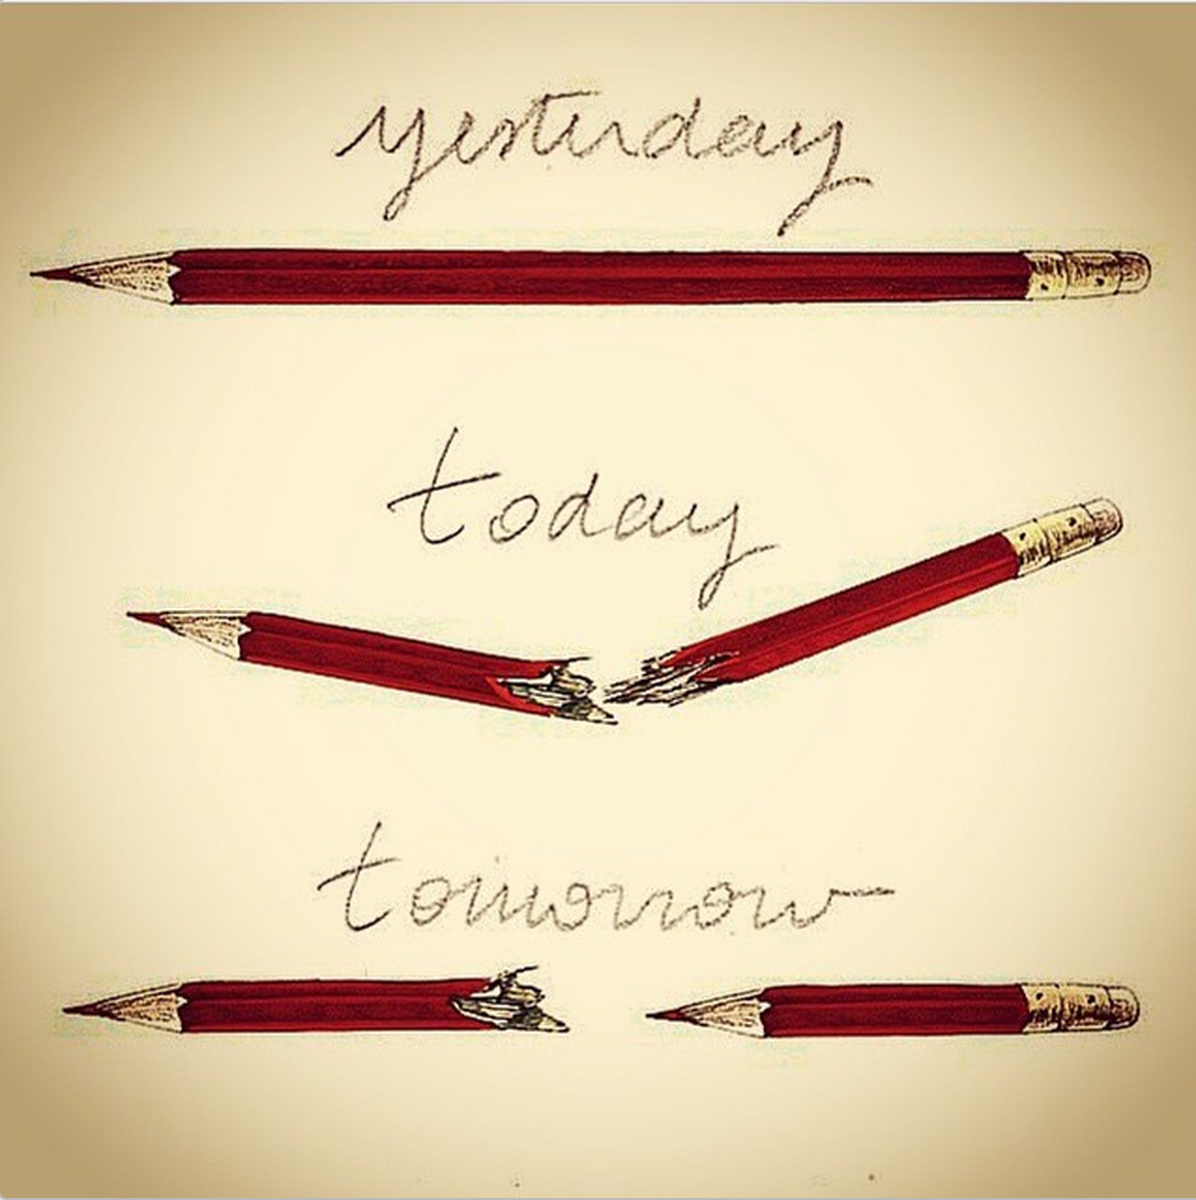 What @BanksyOfficiaI said! http://t.co/ITE4ESCO4Q #JeSuisCharlie http://t.co/pg2epmjuTu